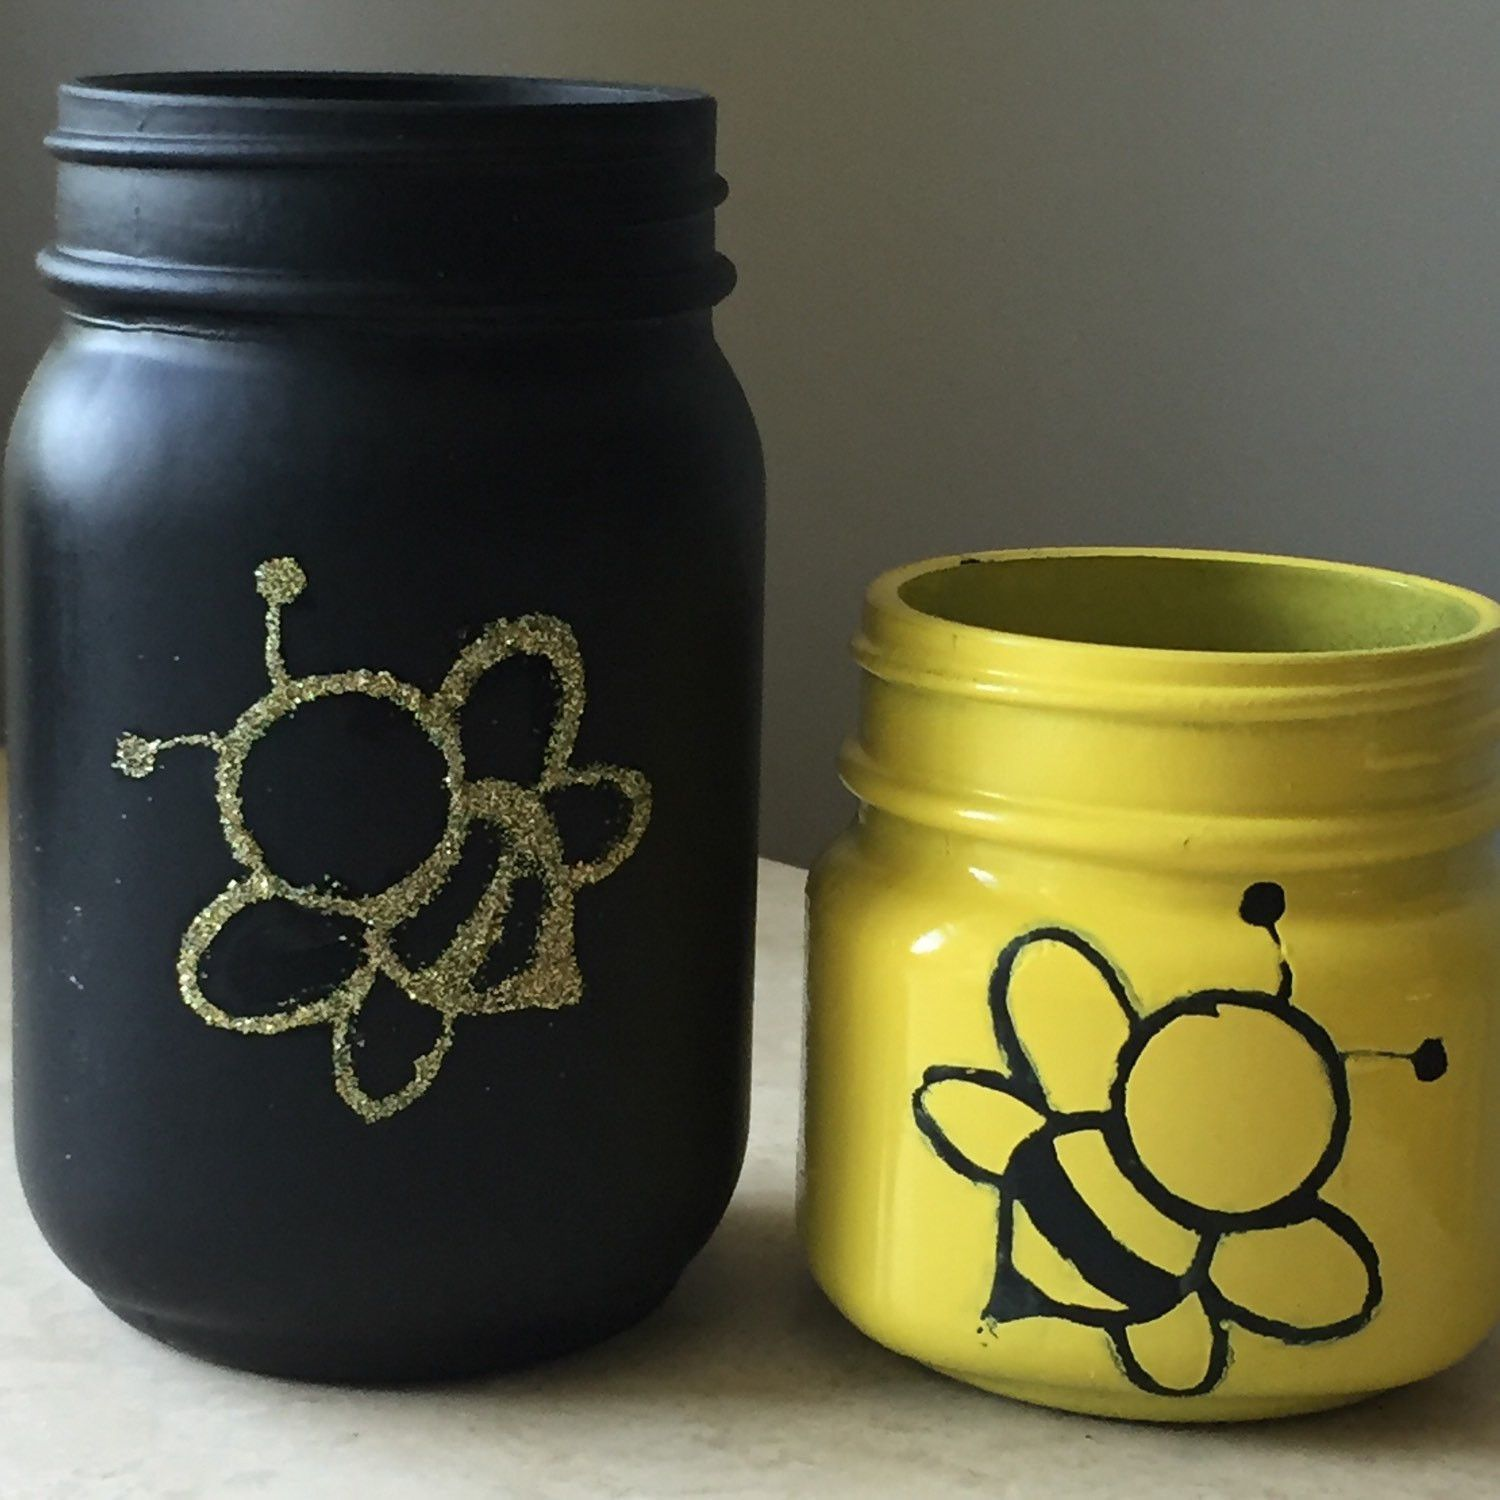 This bumble bee mason jar is perfect for that bumblebee lover friend